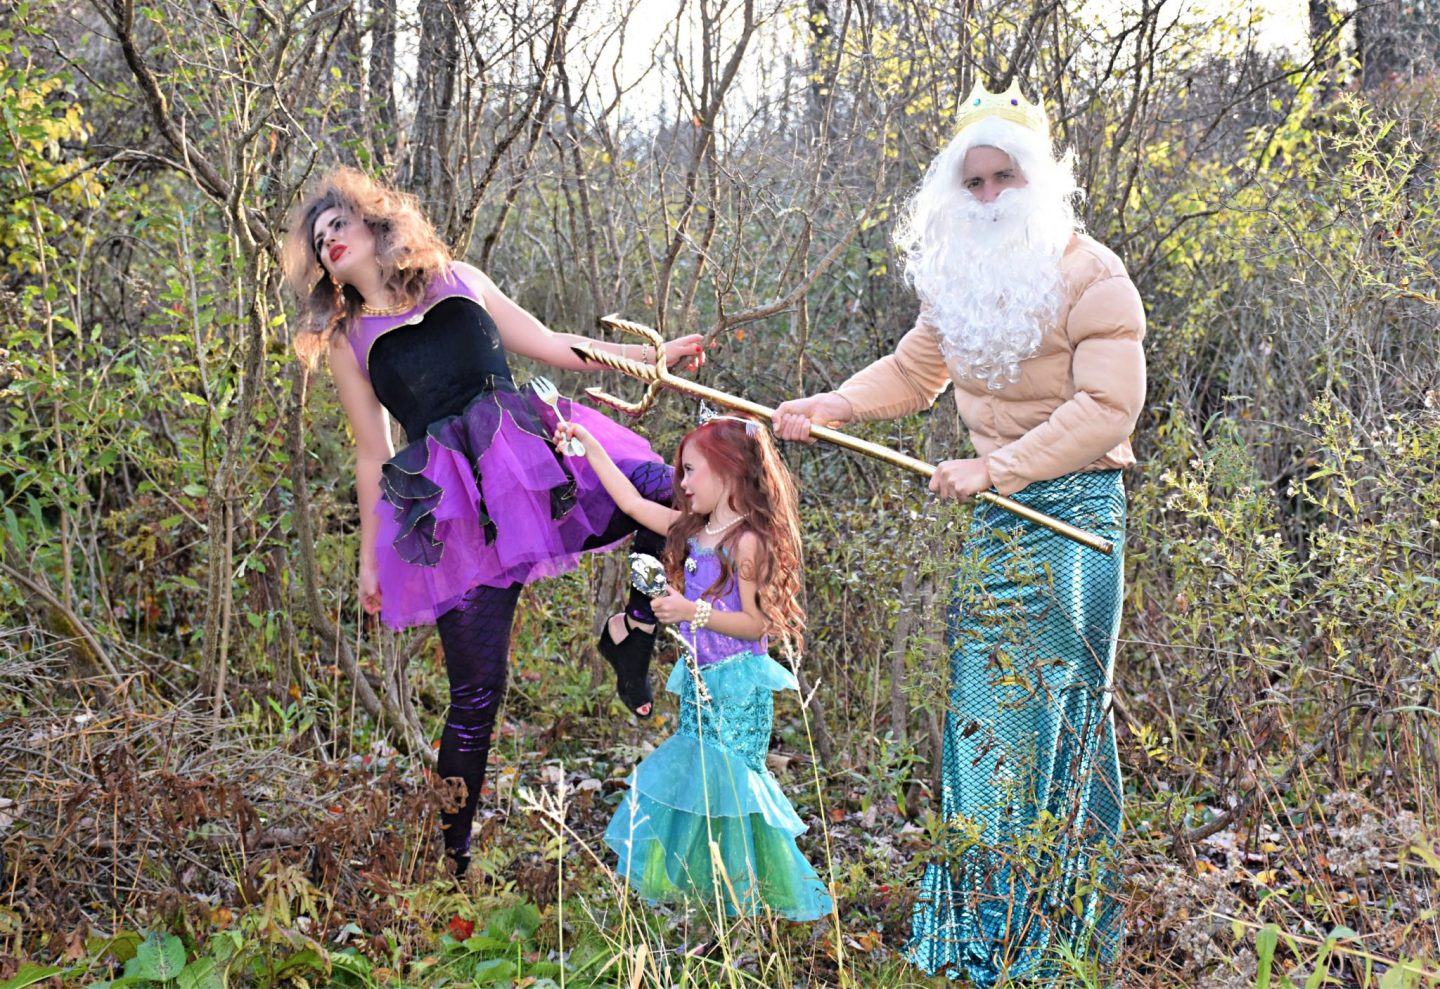 Family Halloween Costume Ideas Cute Unique Ideas The Little Mermaid King Triton Ursula Makeup Ariel